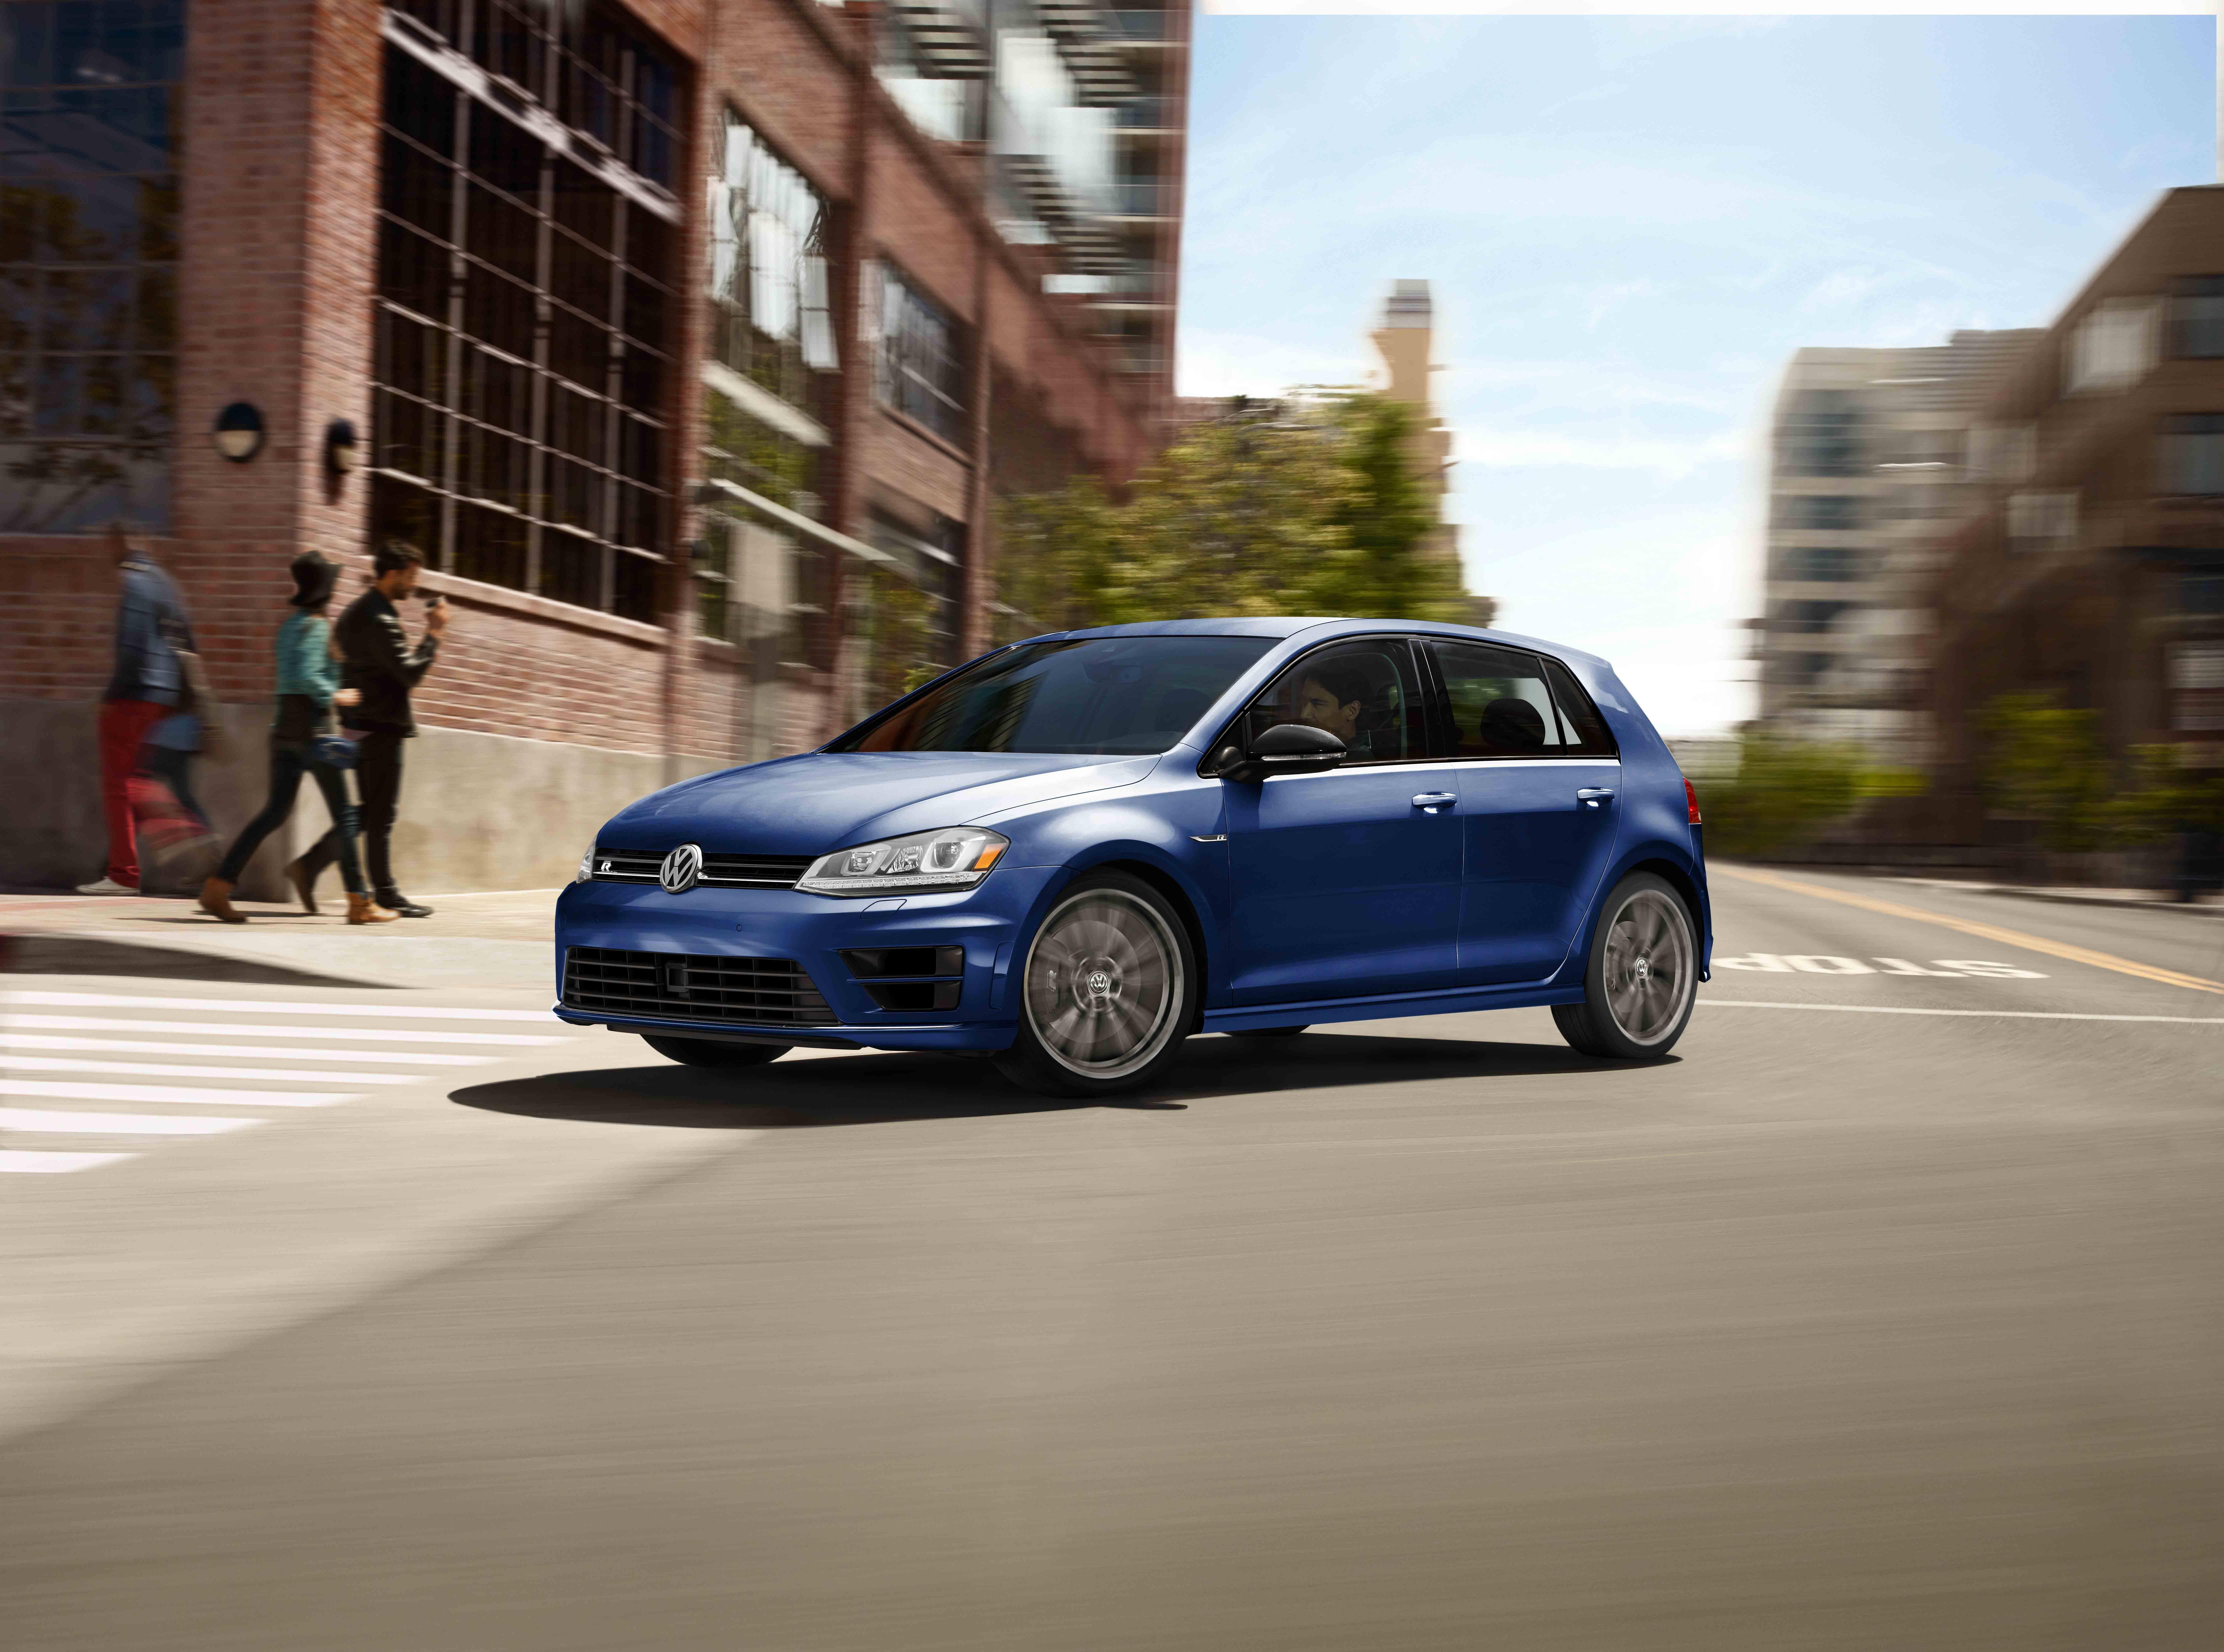 Experience The Power Of German Engineering At Carousel VW! We Offer A  Routine Volkswagen Oil Change In Iowa City, Iowa That Will Keep You On The  Move.